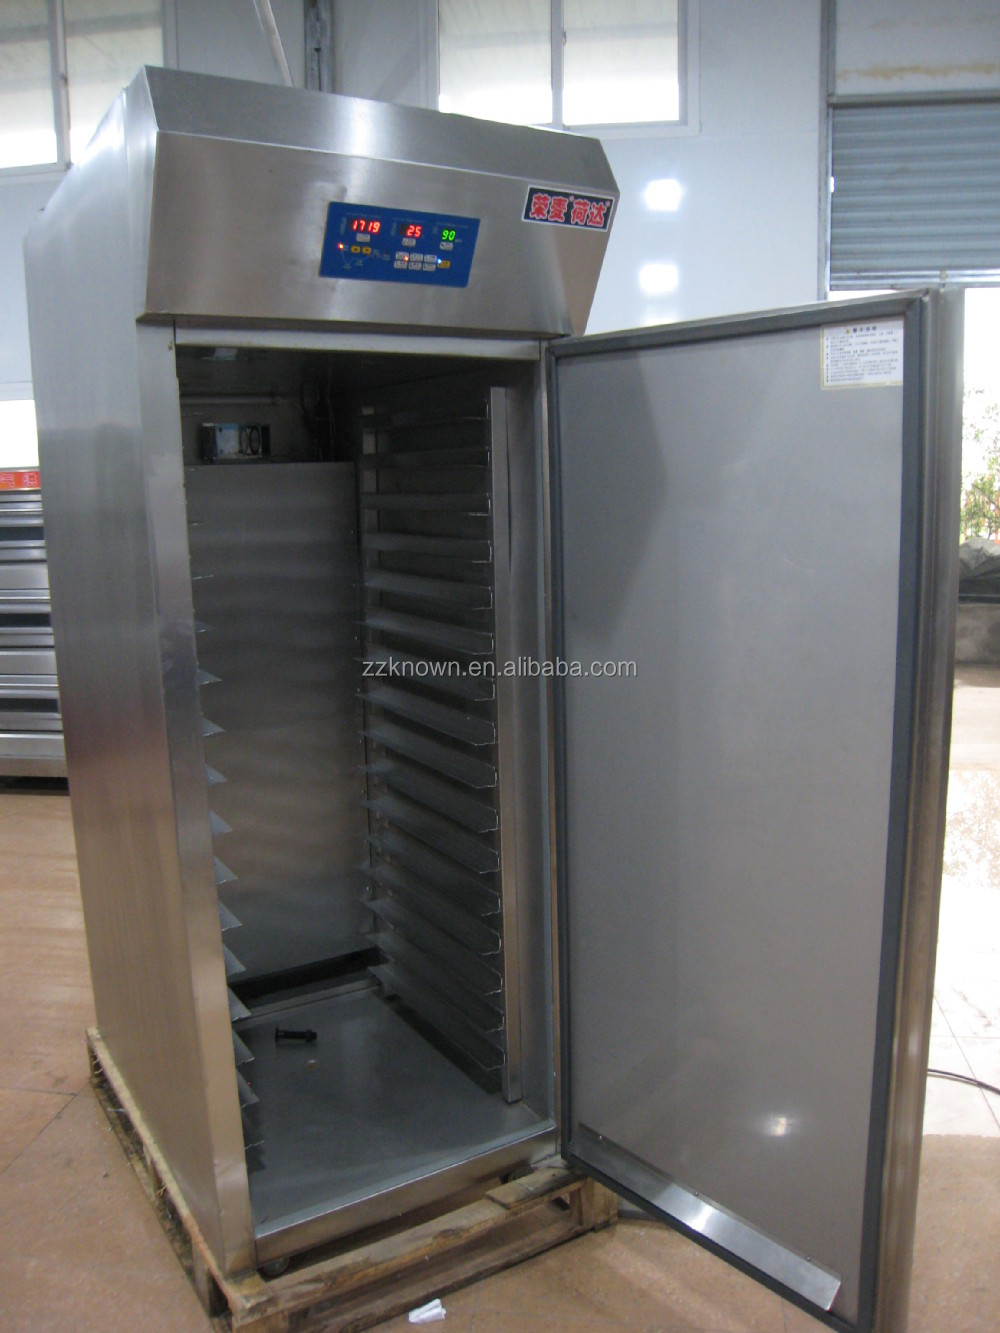 Digital Control With Steam Humidification Bakery Retarder